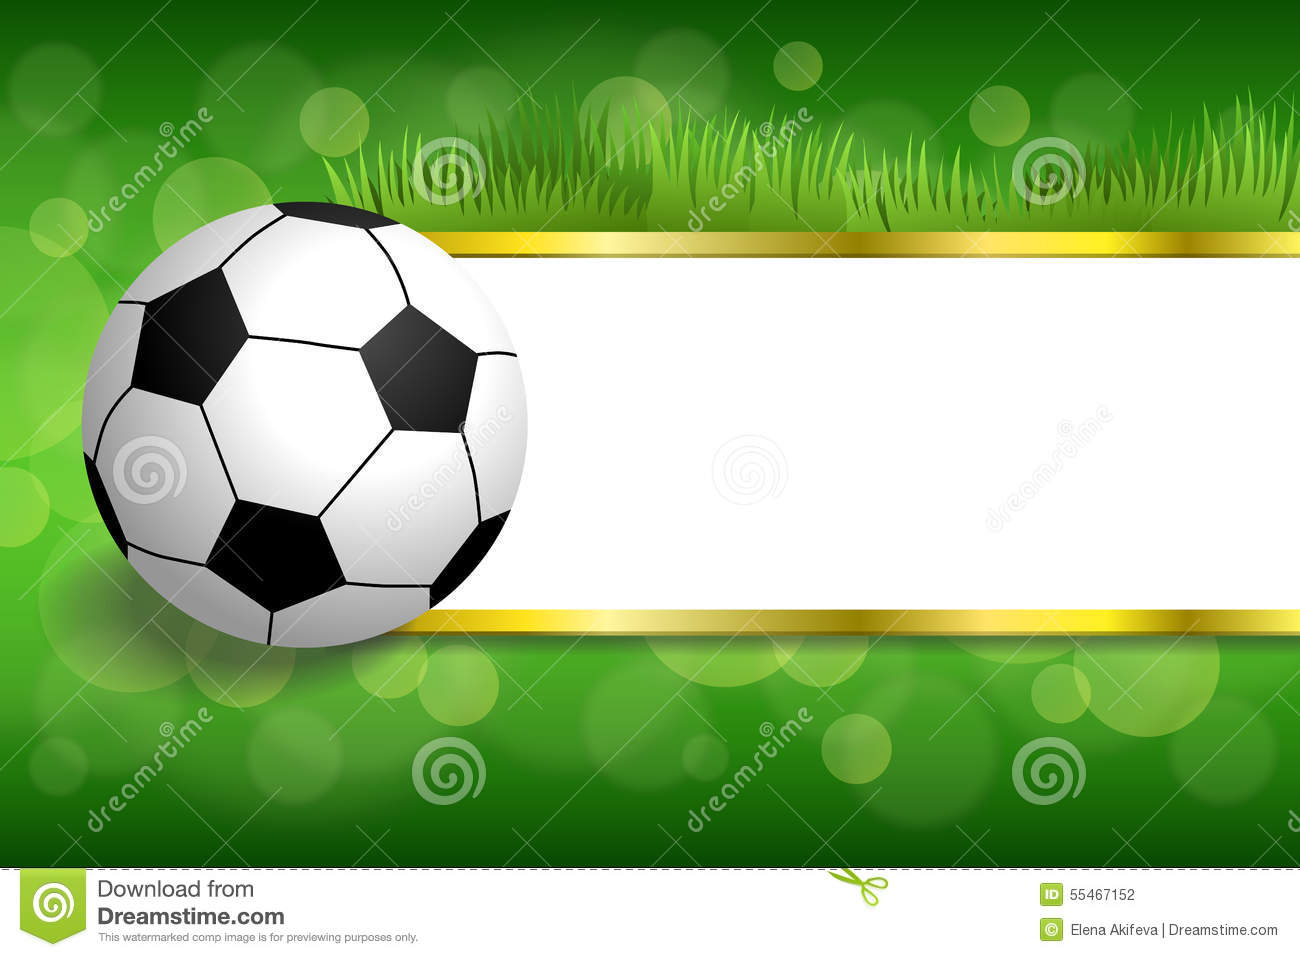 Fondos De Pantalla Fútbol Pelota Silueta Deporte: Background Abstract Green Football Soccer Sport Ball